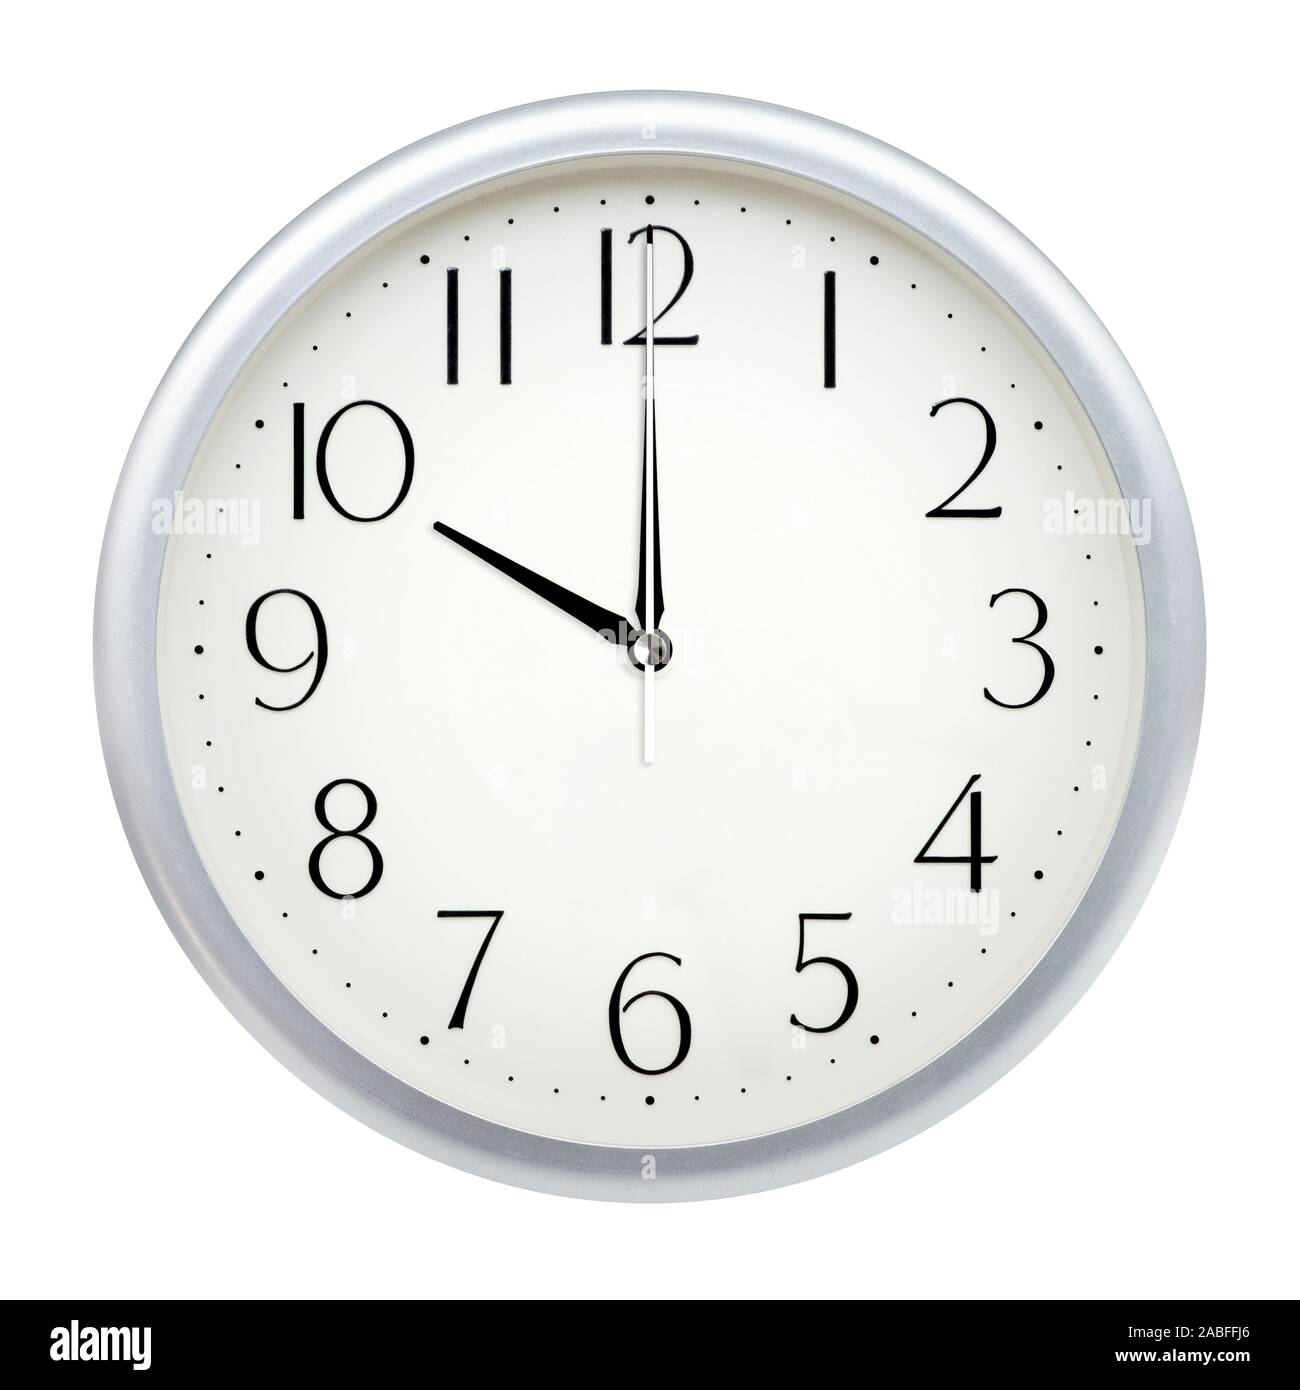 Page 2 10 O Clock High Resolution Stock Photography And Images Alamy